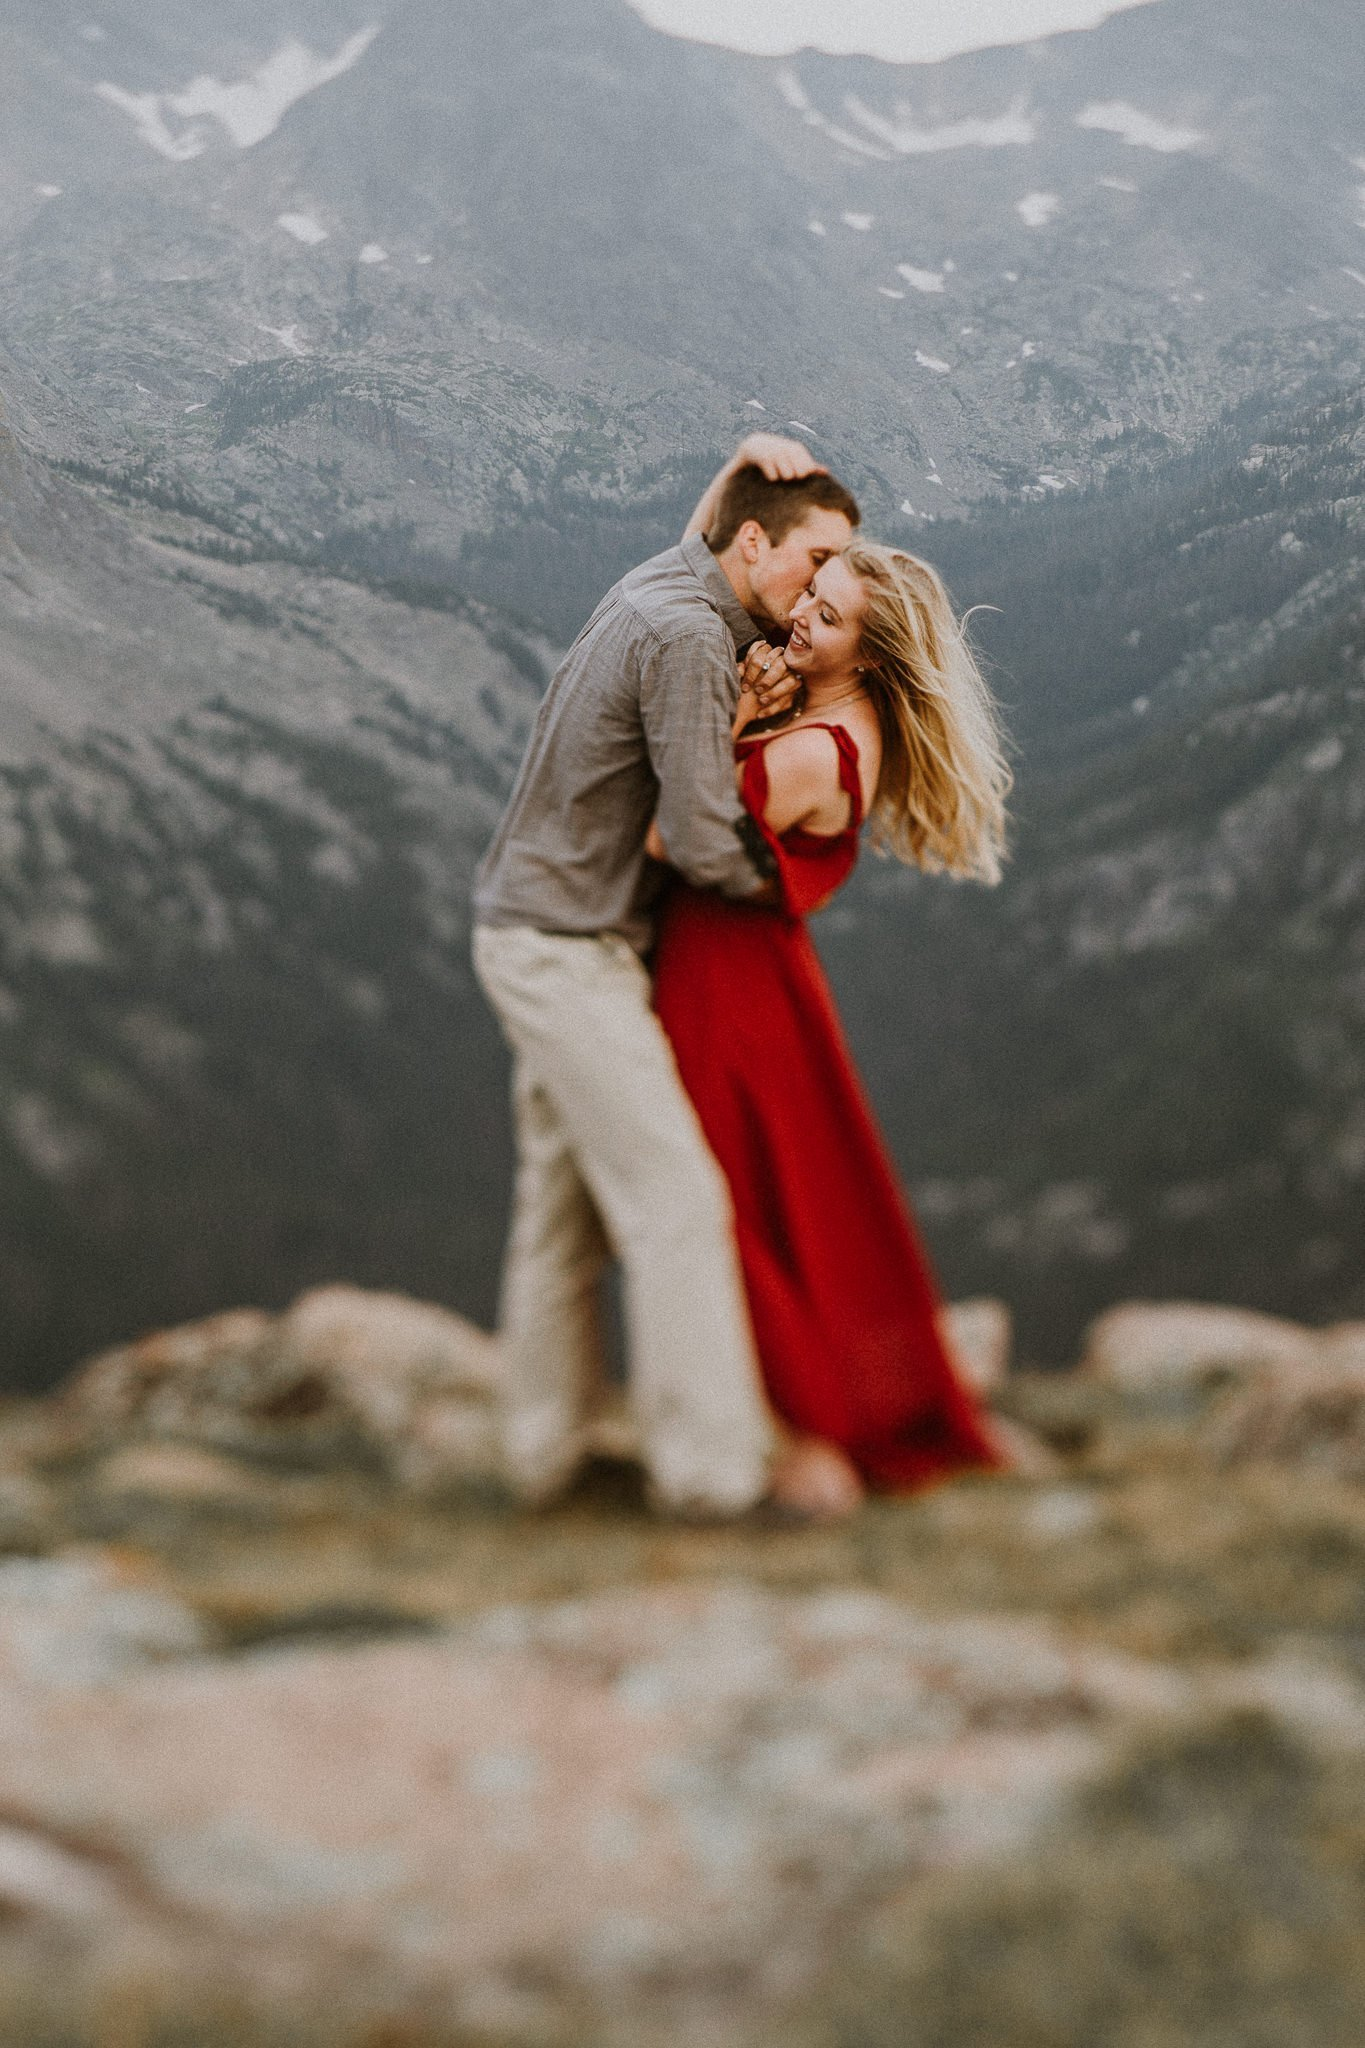 ESTES PARK WEDDING PHOTOGRAPHY |TRAIL RIDGE ROAD ENGAGEMENT I Marissa + Nick | JUSTYNA E BUTLER PHOTOGRAPHY | ROCKY MOUNTAIN NATIONAL PARK ENGAGEMENT |COLORADO MOUNTAIN ENGAGEMENT PHOTOGRAPHER